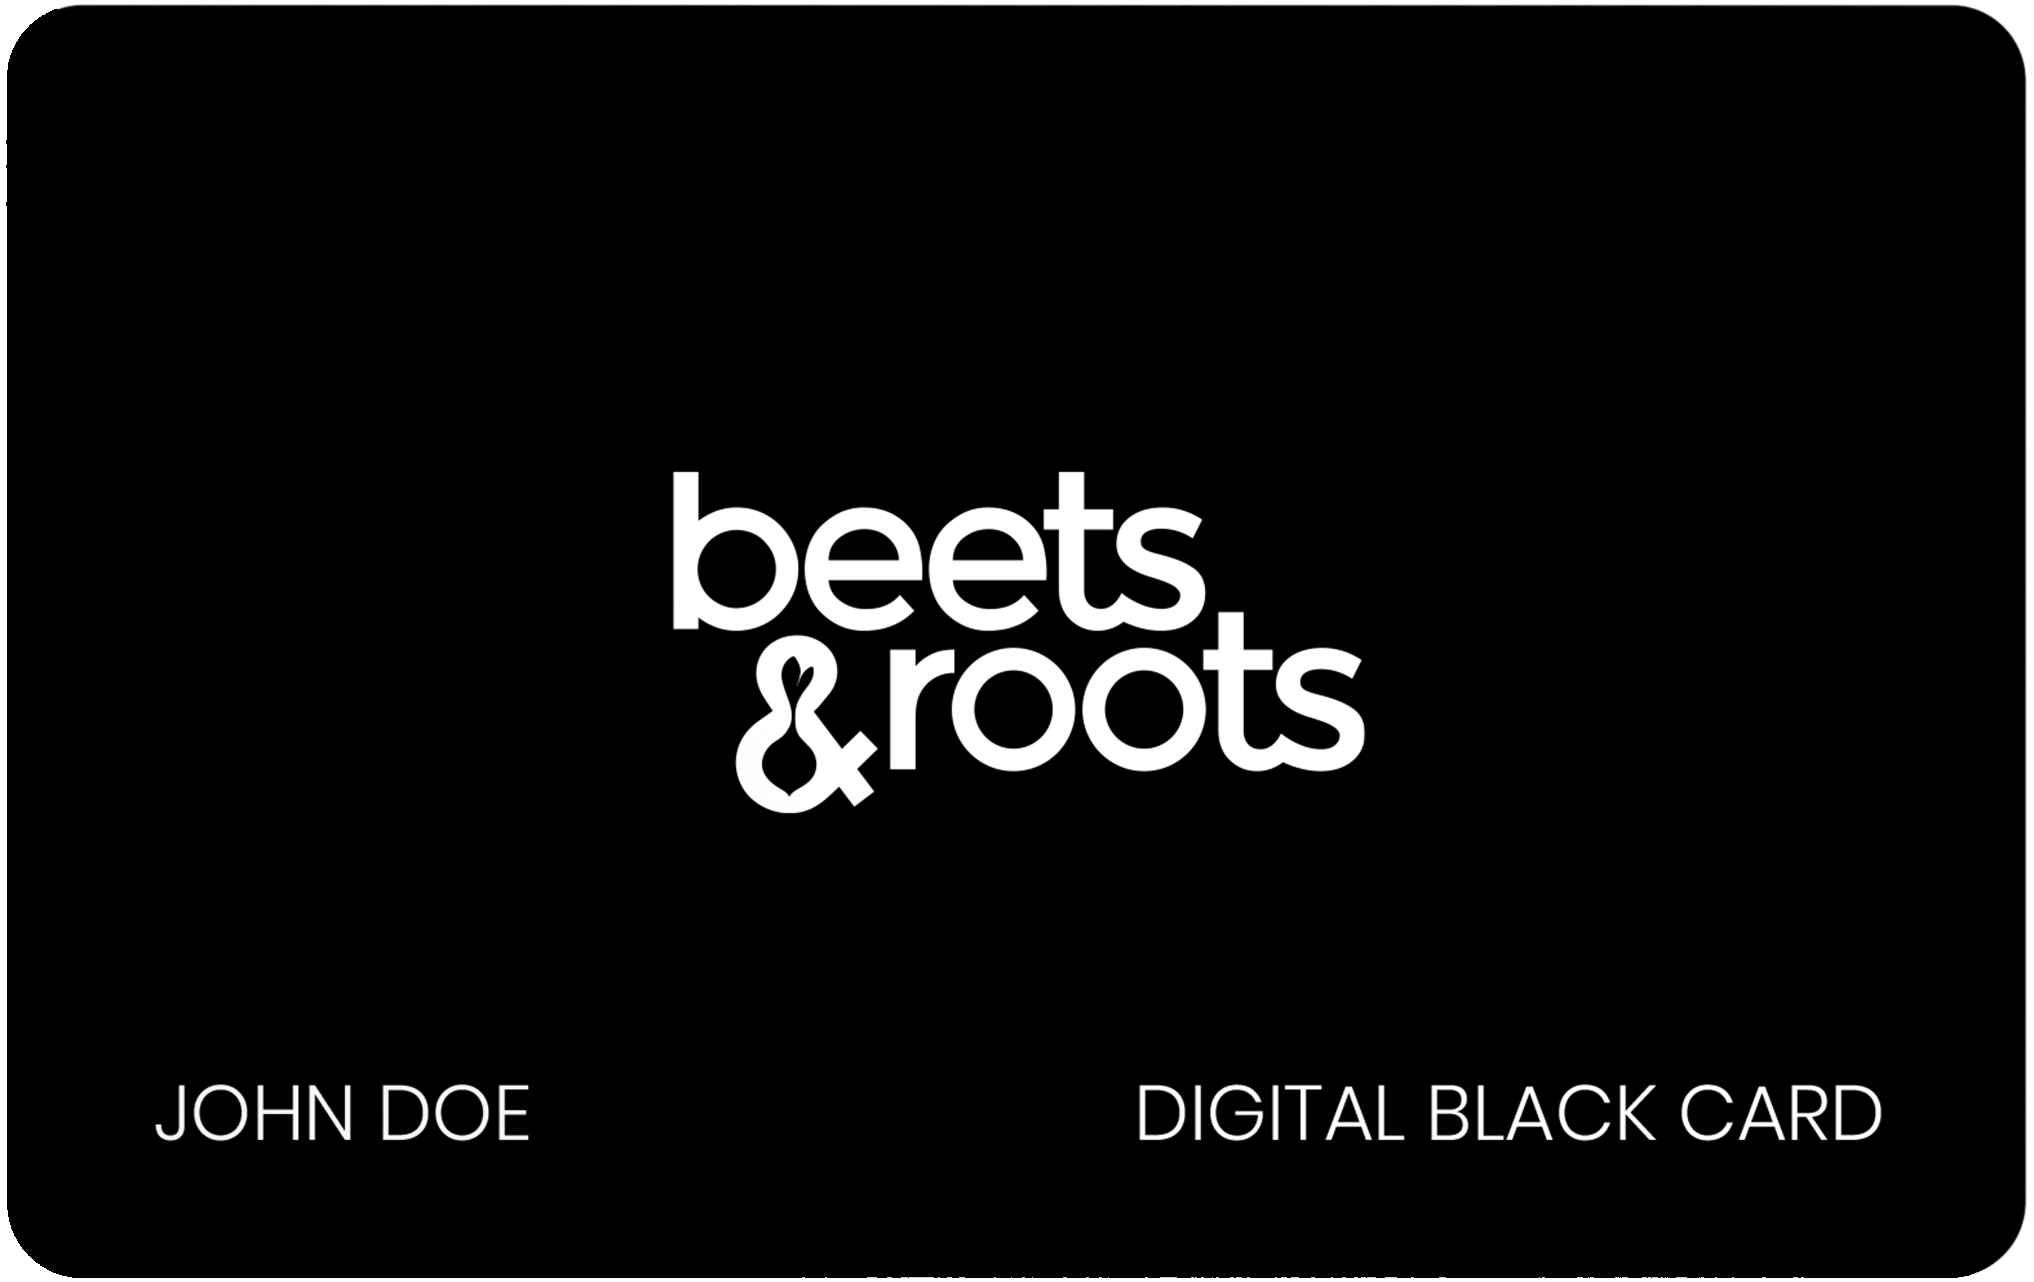 https://beetsandroots-data-library.s3.eu-central-1.amazonaws.com/PWA/ogf-black-card.png